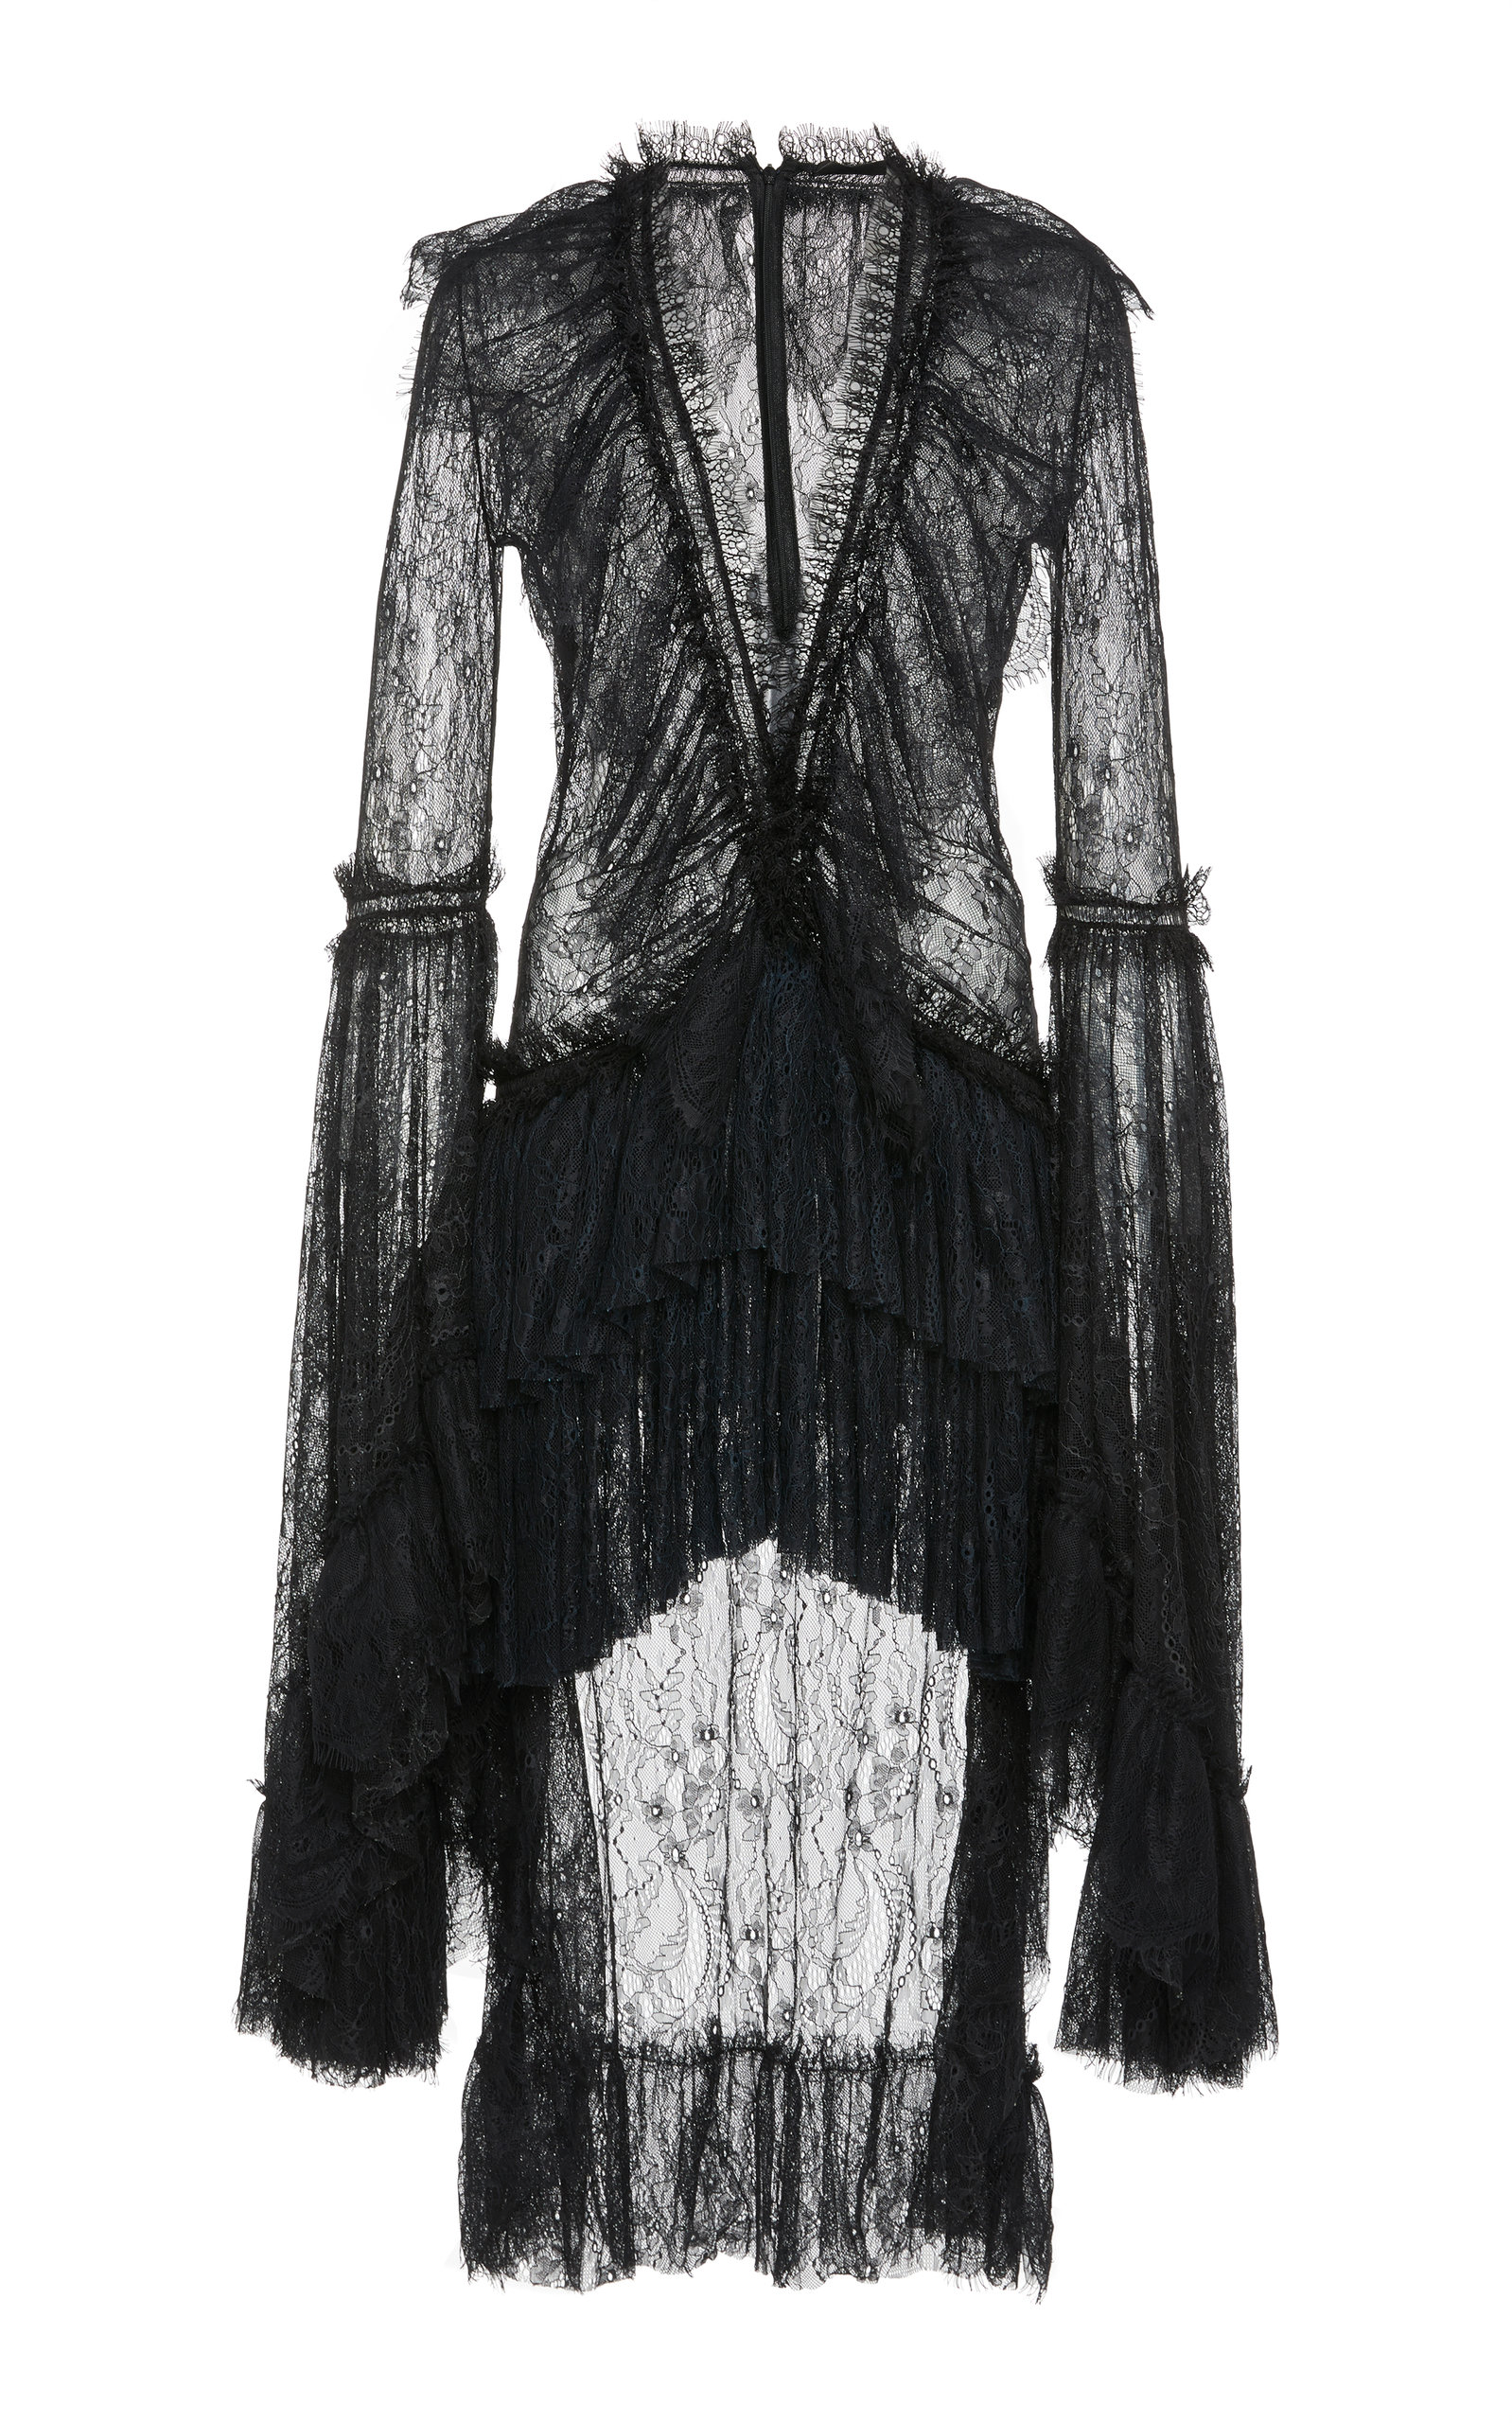 AMEN COUTURE Tiered Lace Dress in Black